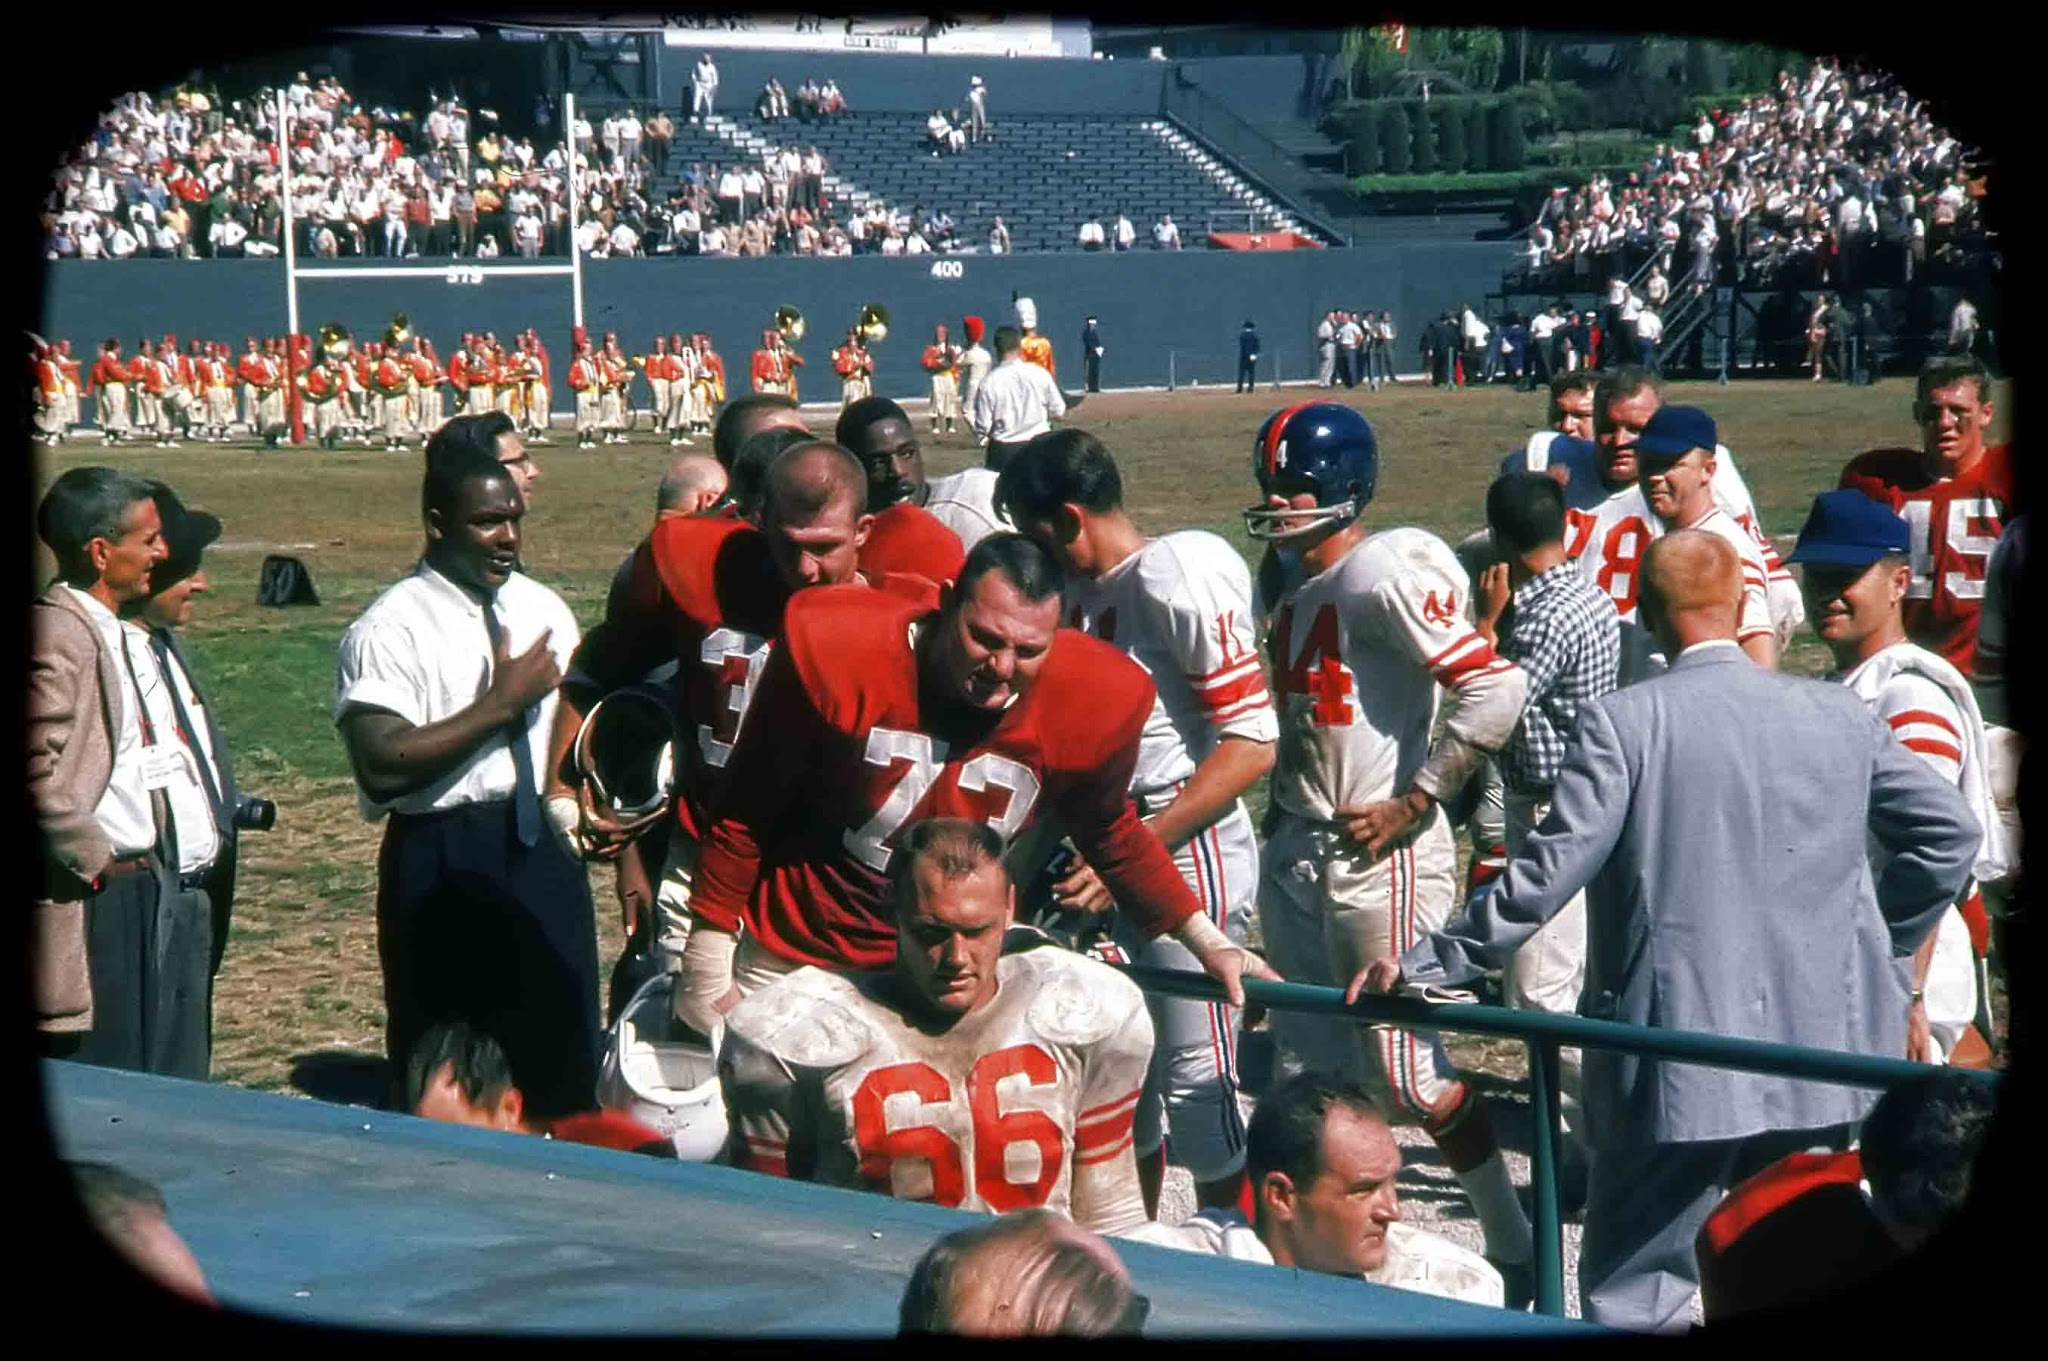 Jack Stroud (66), Lee Grosscup (11), Kyle Rote (44), New York Giants at St. Louis Cardinals (October 8, 1961)